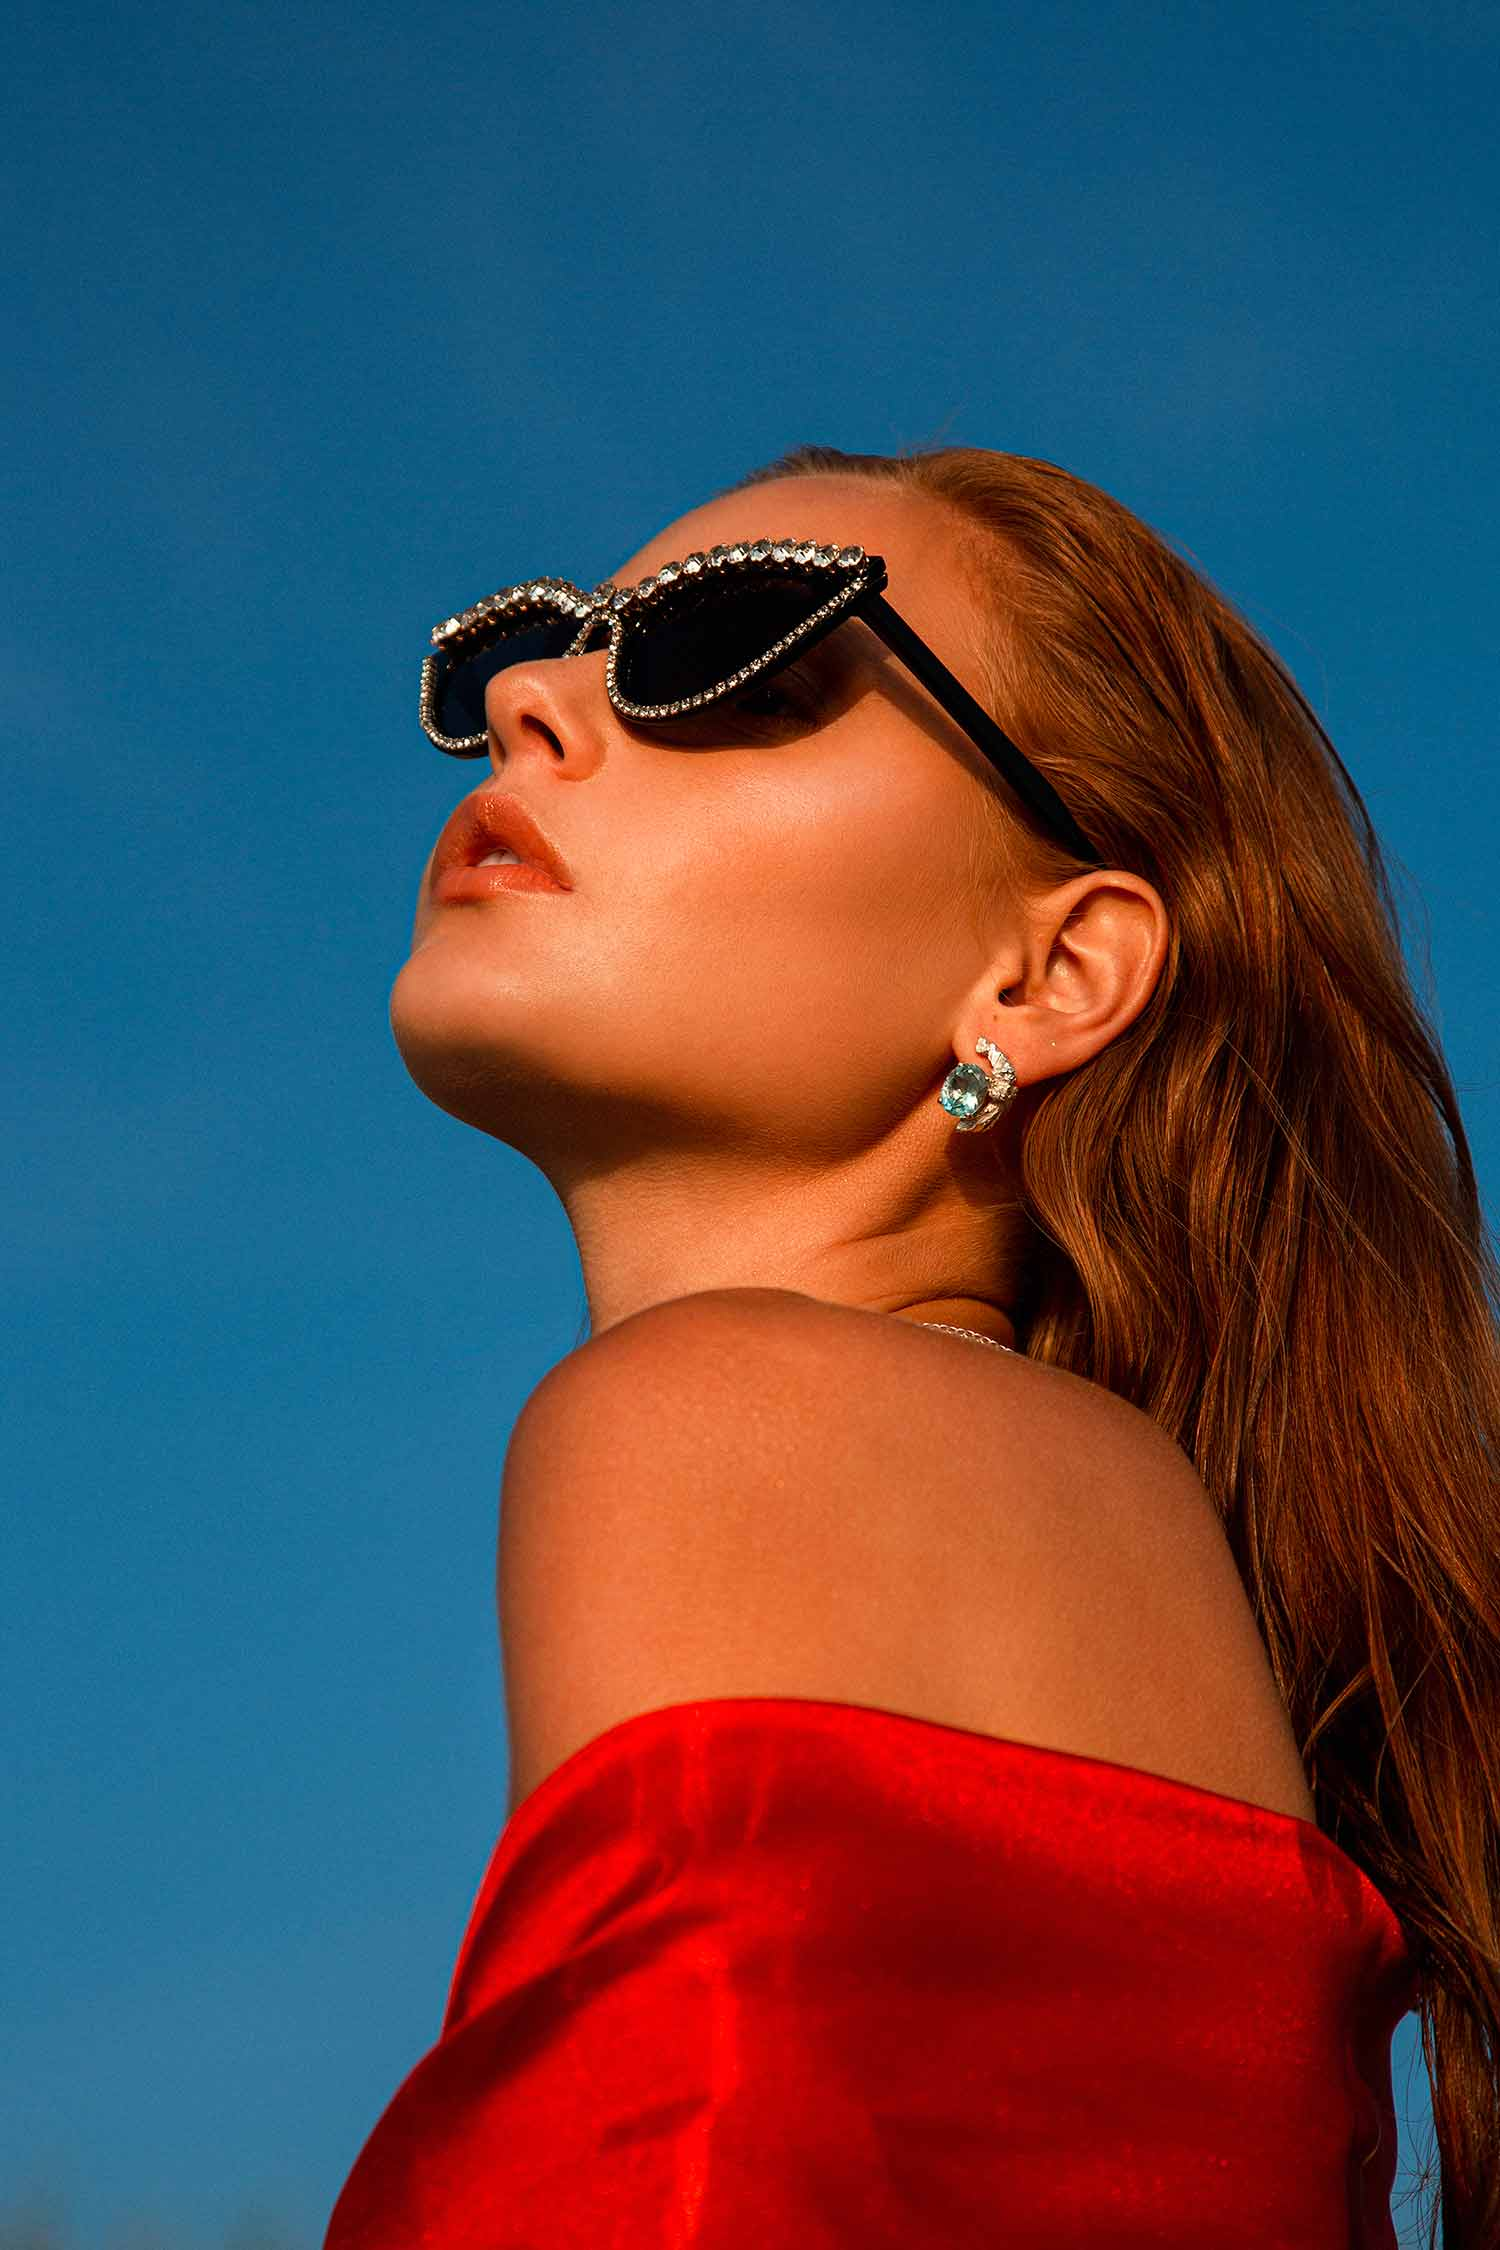 Model in the blue-sky background, wearing Zydrune Topaz earrings and black diamante sunglasses.